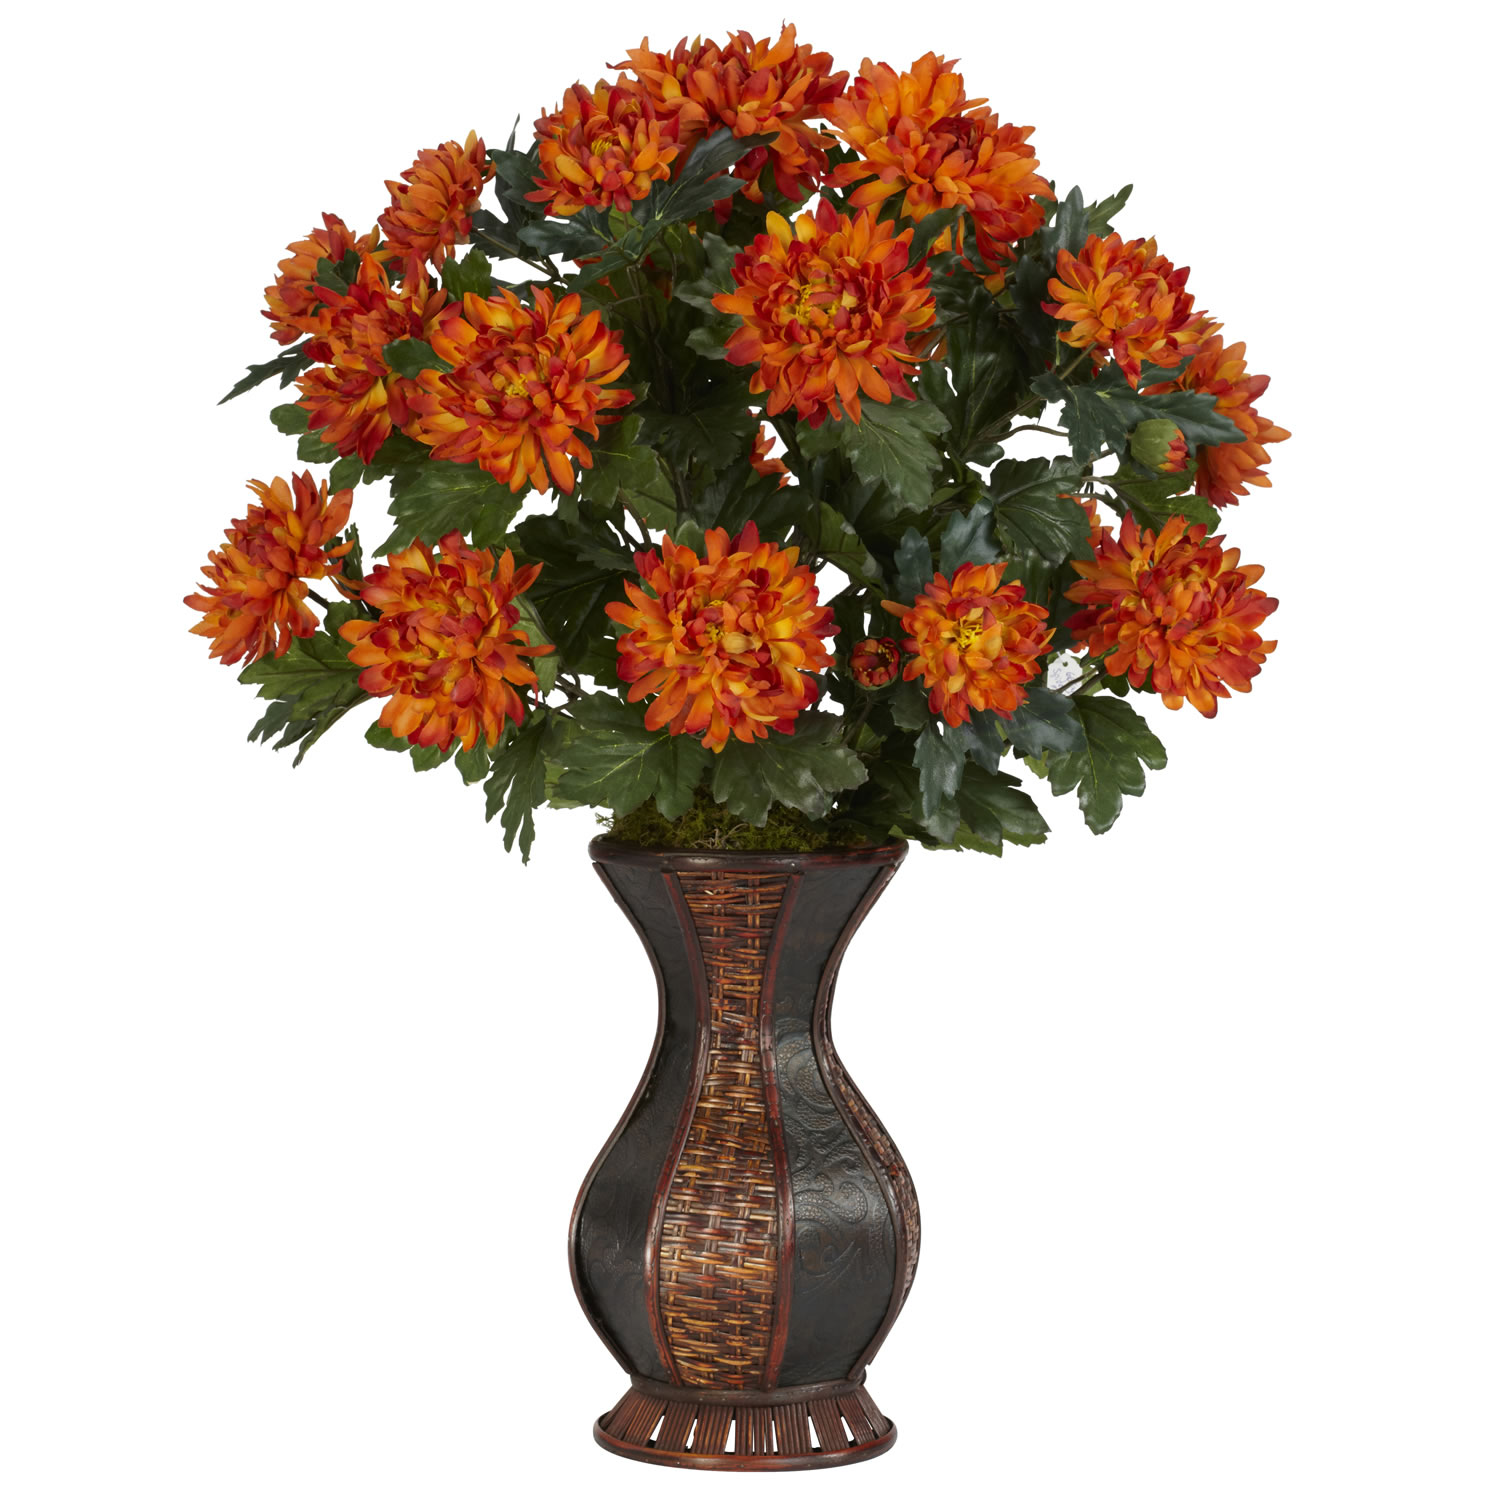 Silk Spider Mums in Urn 6664